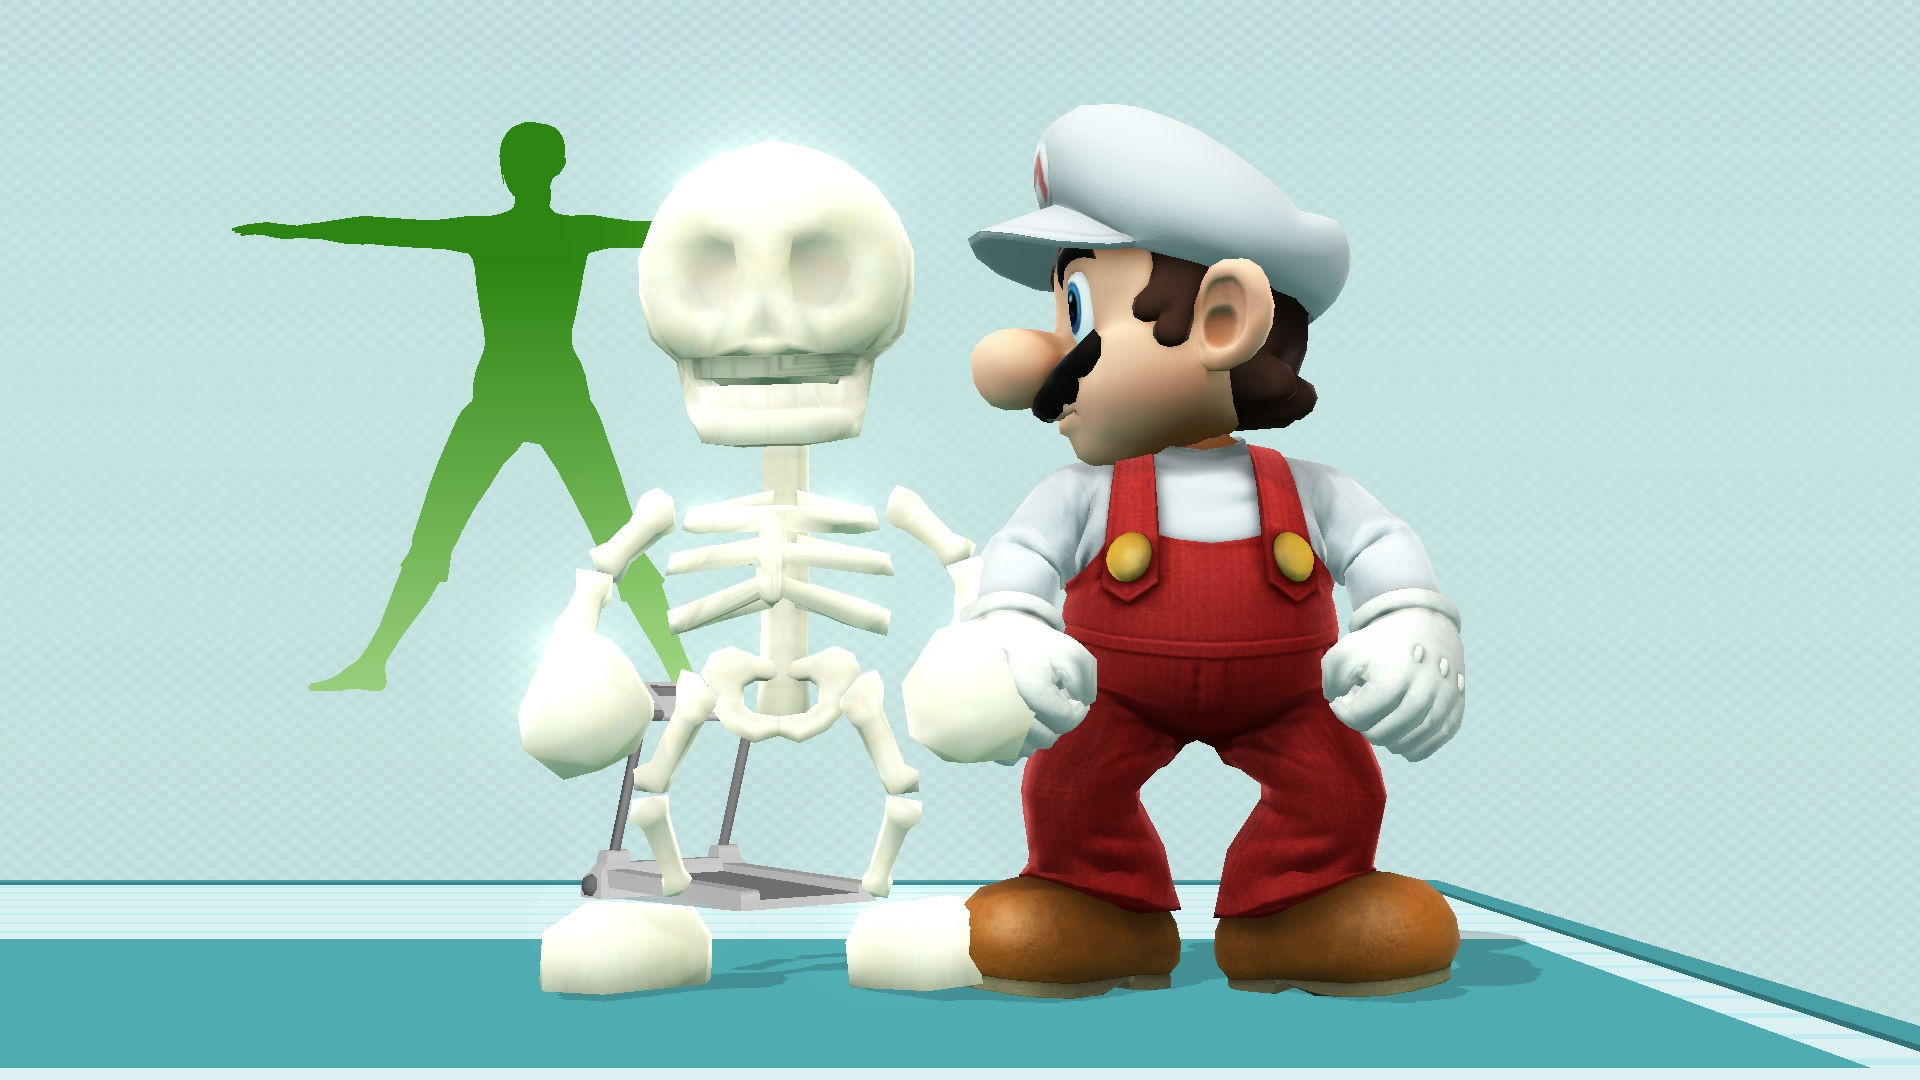 skeleton mario  completed   super smash bros for wii u super mario galaxy manuel wii super mario galaxy 2 manual